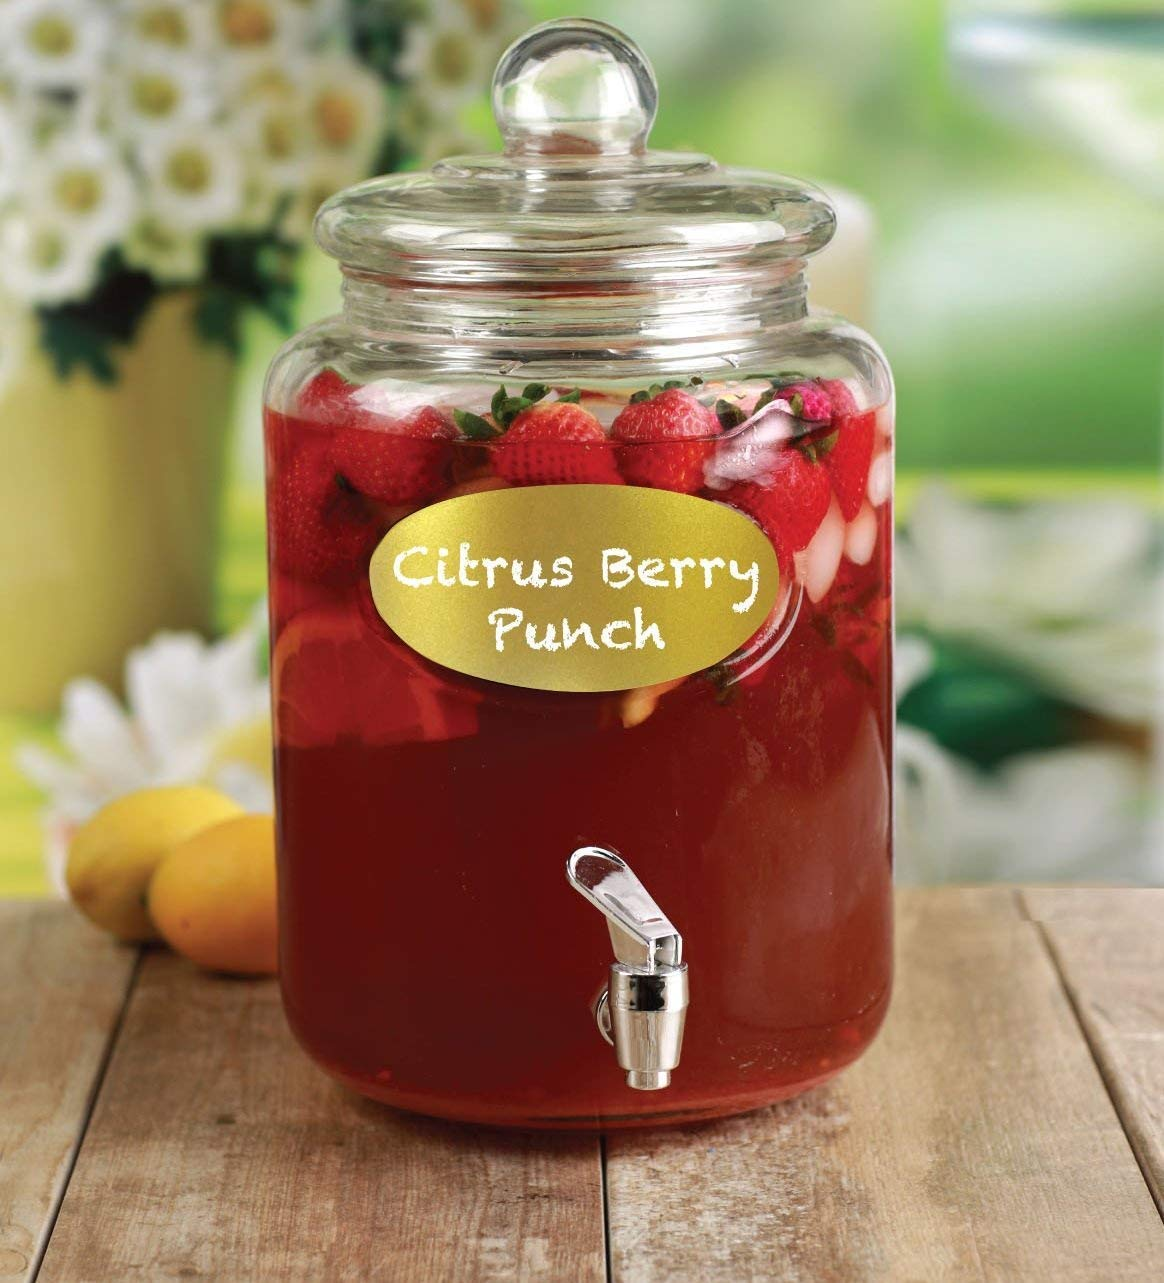 Circleware 67135 Wellington Gold Chalkboard Mason Jar Glass Beverage Dispenser with Lid Glassware for Water, Iced Tea Kombucha, Punch and All Cold Drinks, 1.5 Gallon (1 Unit)